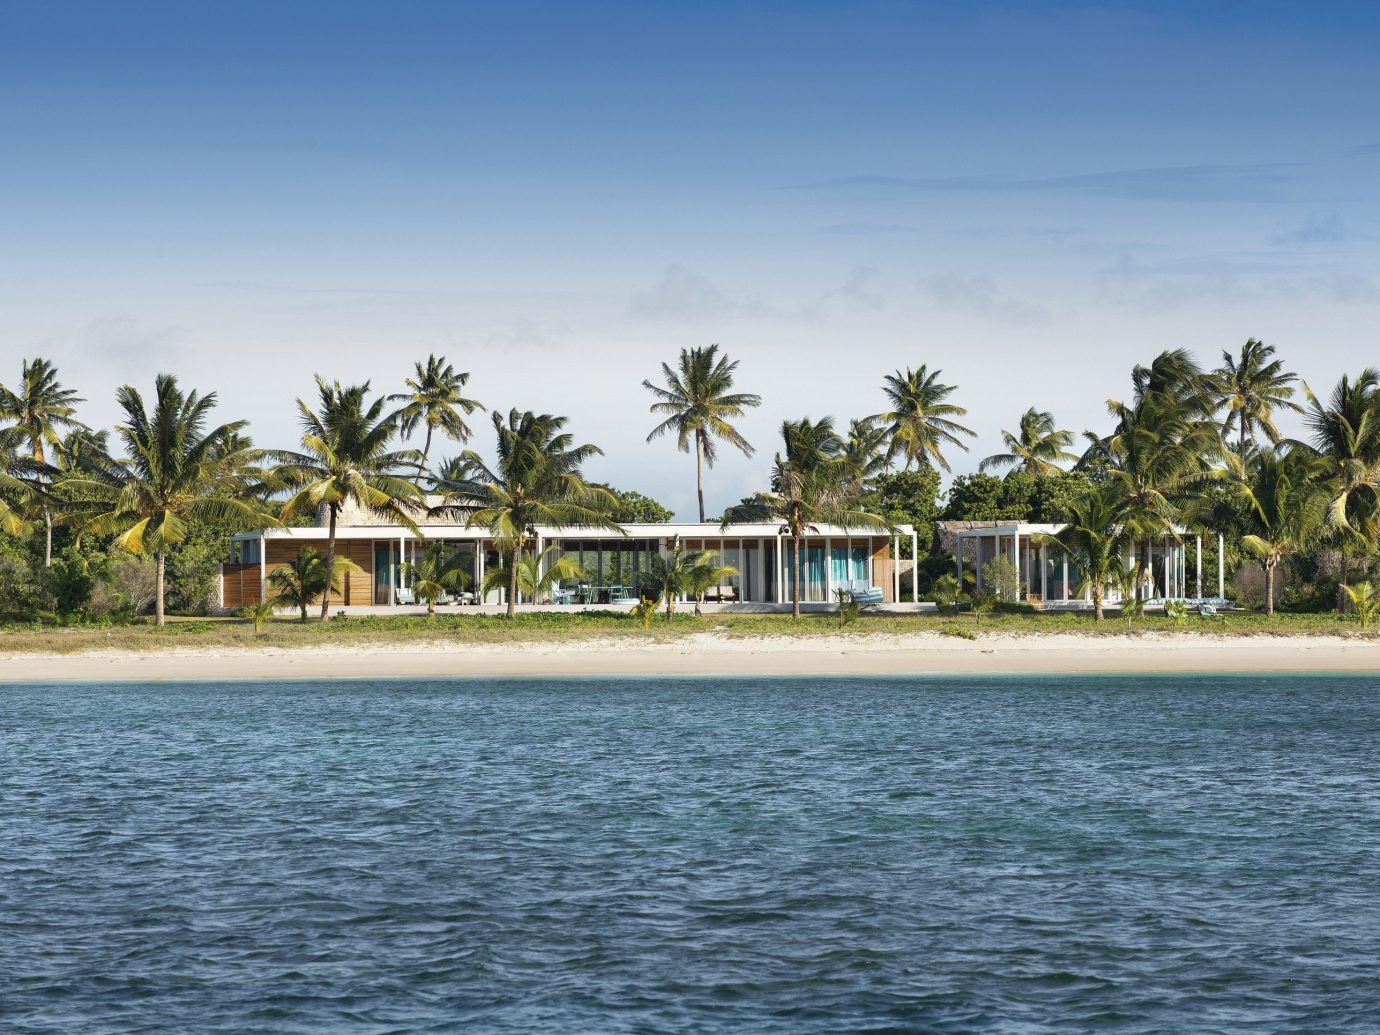 All-Inclusive Resorts Hotels sky water outdoor body of water Sea coastal and oceanic landforms palm tree arecales shore Ocean tropics tree Resort real estate Coast Beach daytime vacation bay Island caribbean Lagoon horizon tourism palm plant cloud house day sandy